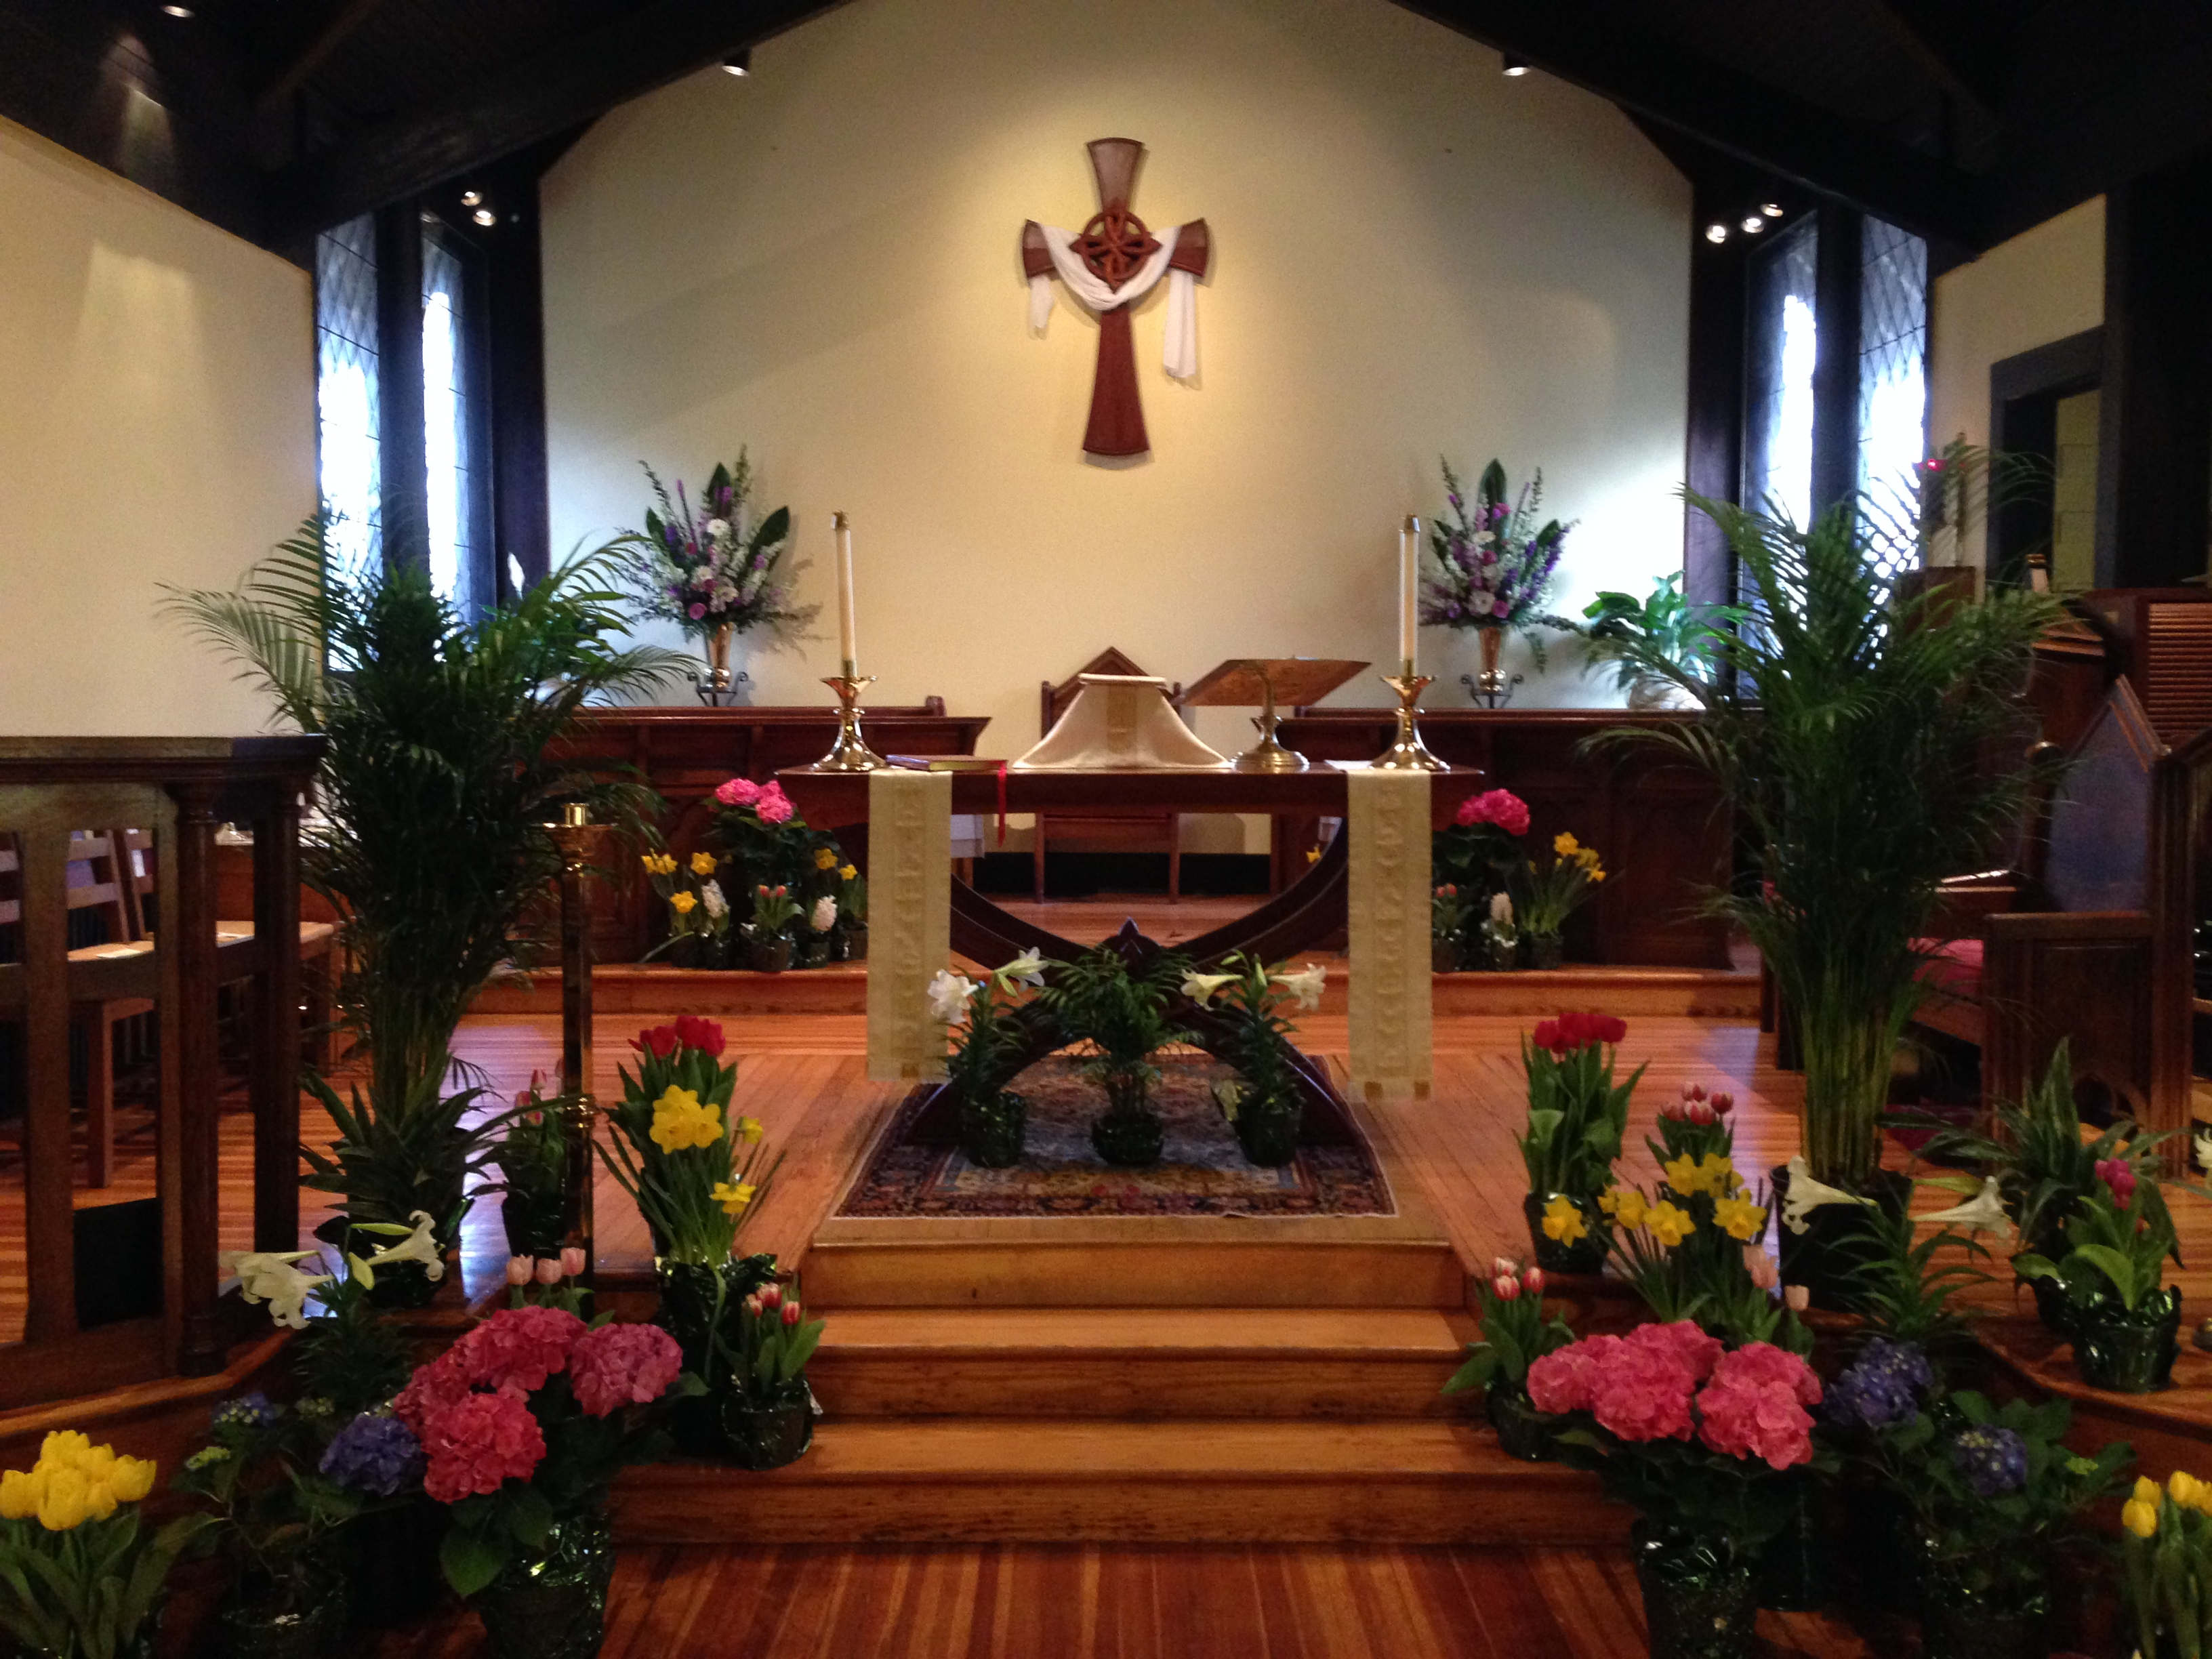 Altar decorated for Easter